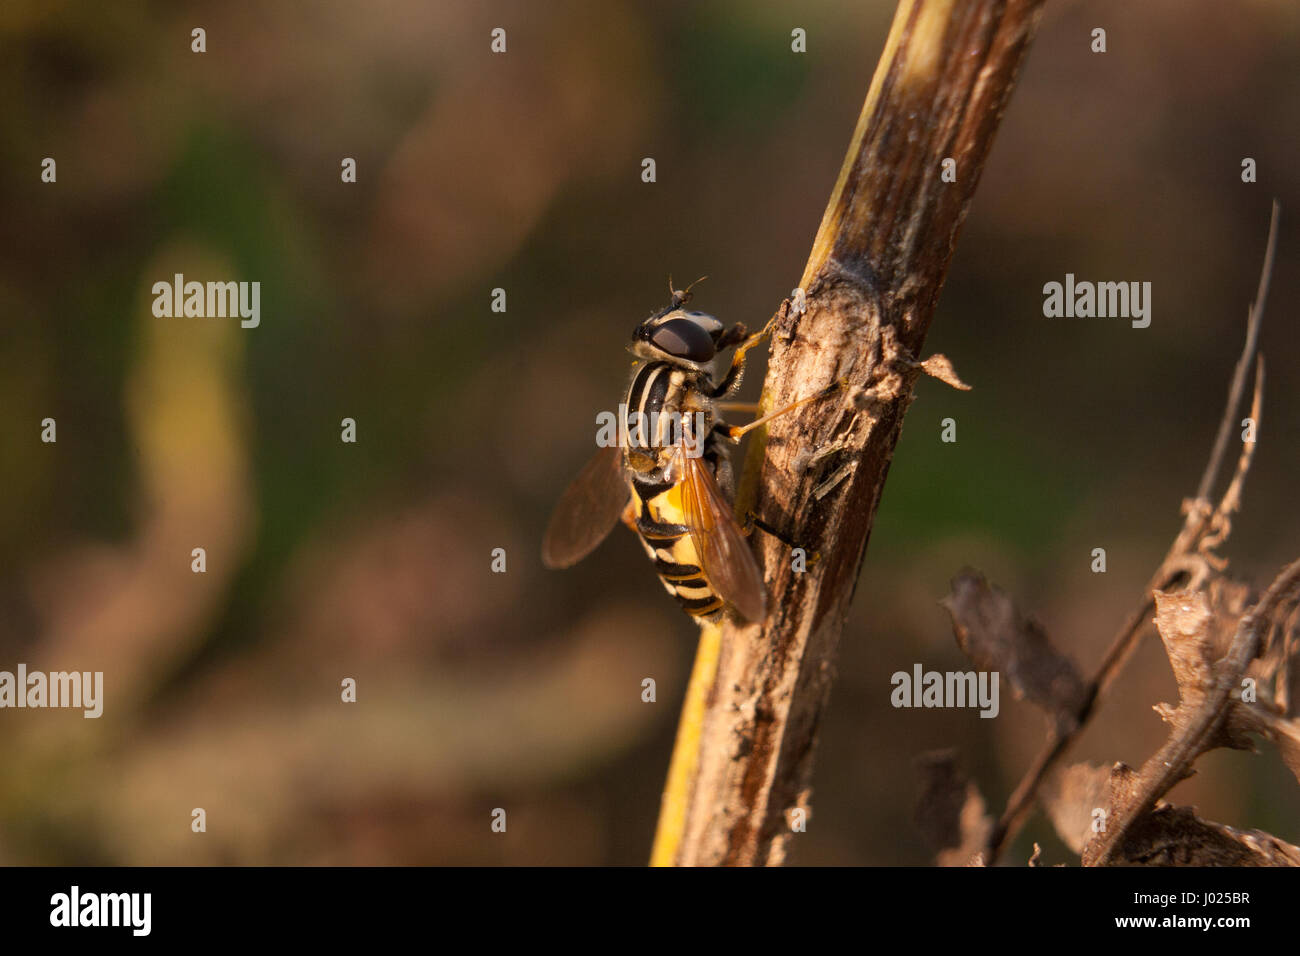 Beautiful up close shot of the bee on the brown branch. Picture was taken during the sun down in the botanical garden. - Stock Image